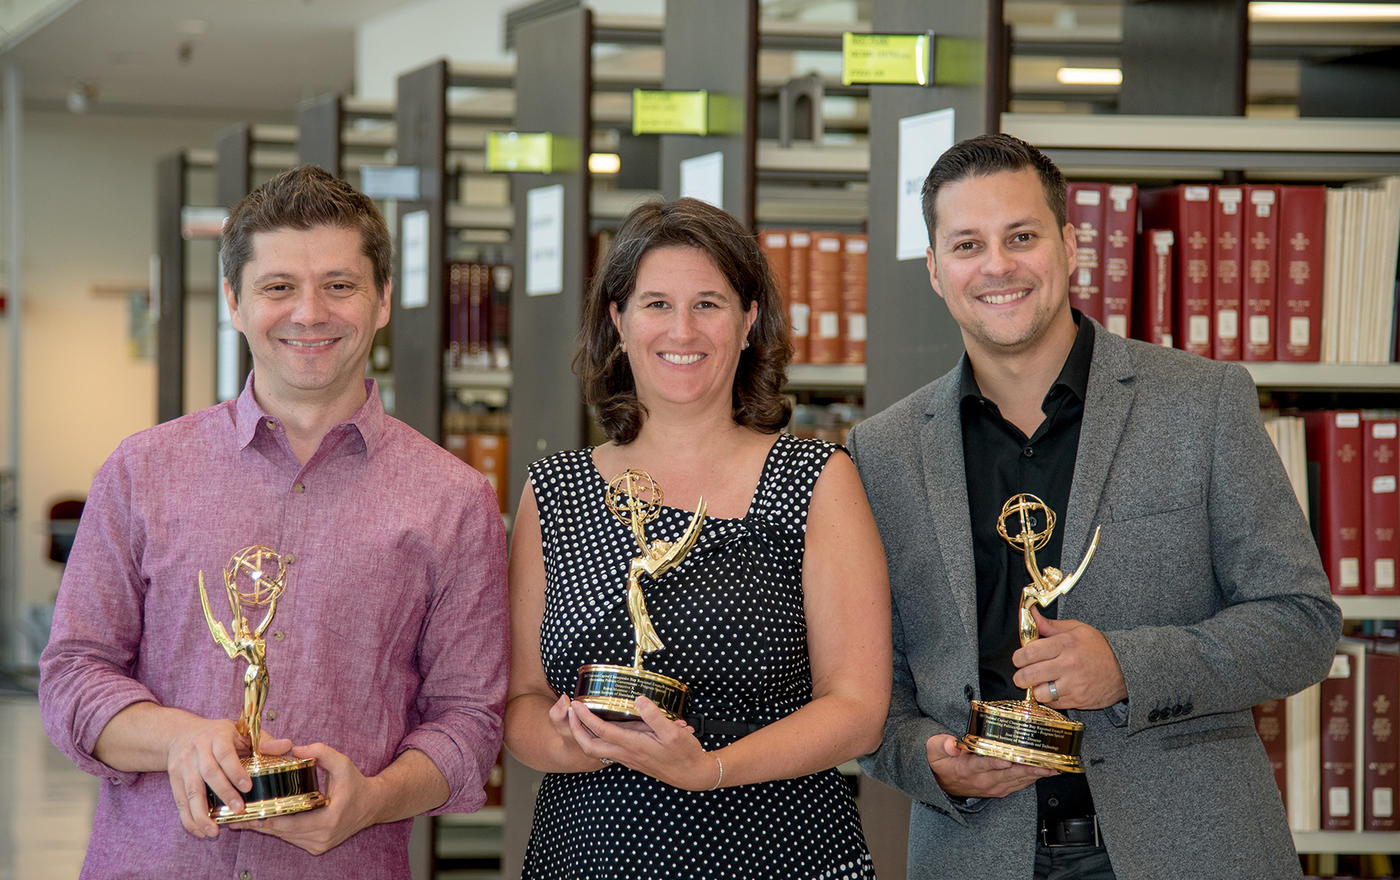 three people hold Emmy Awards in the NIST library